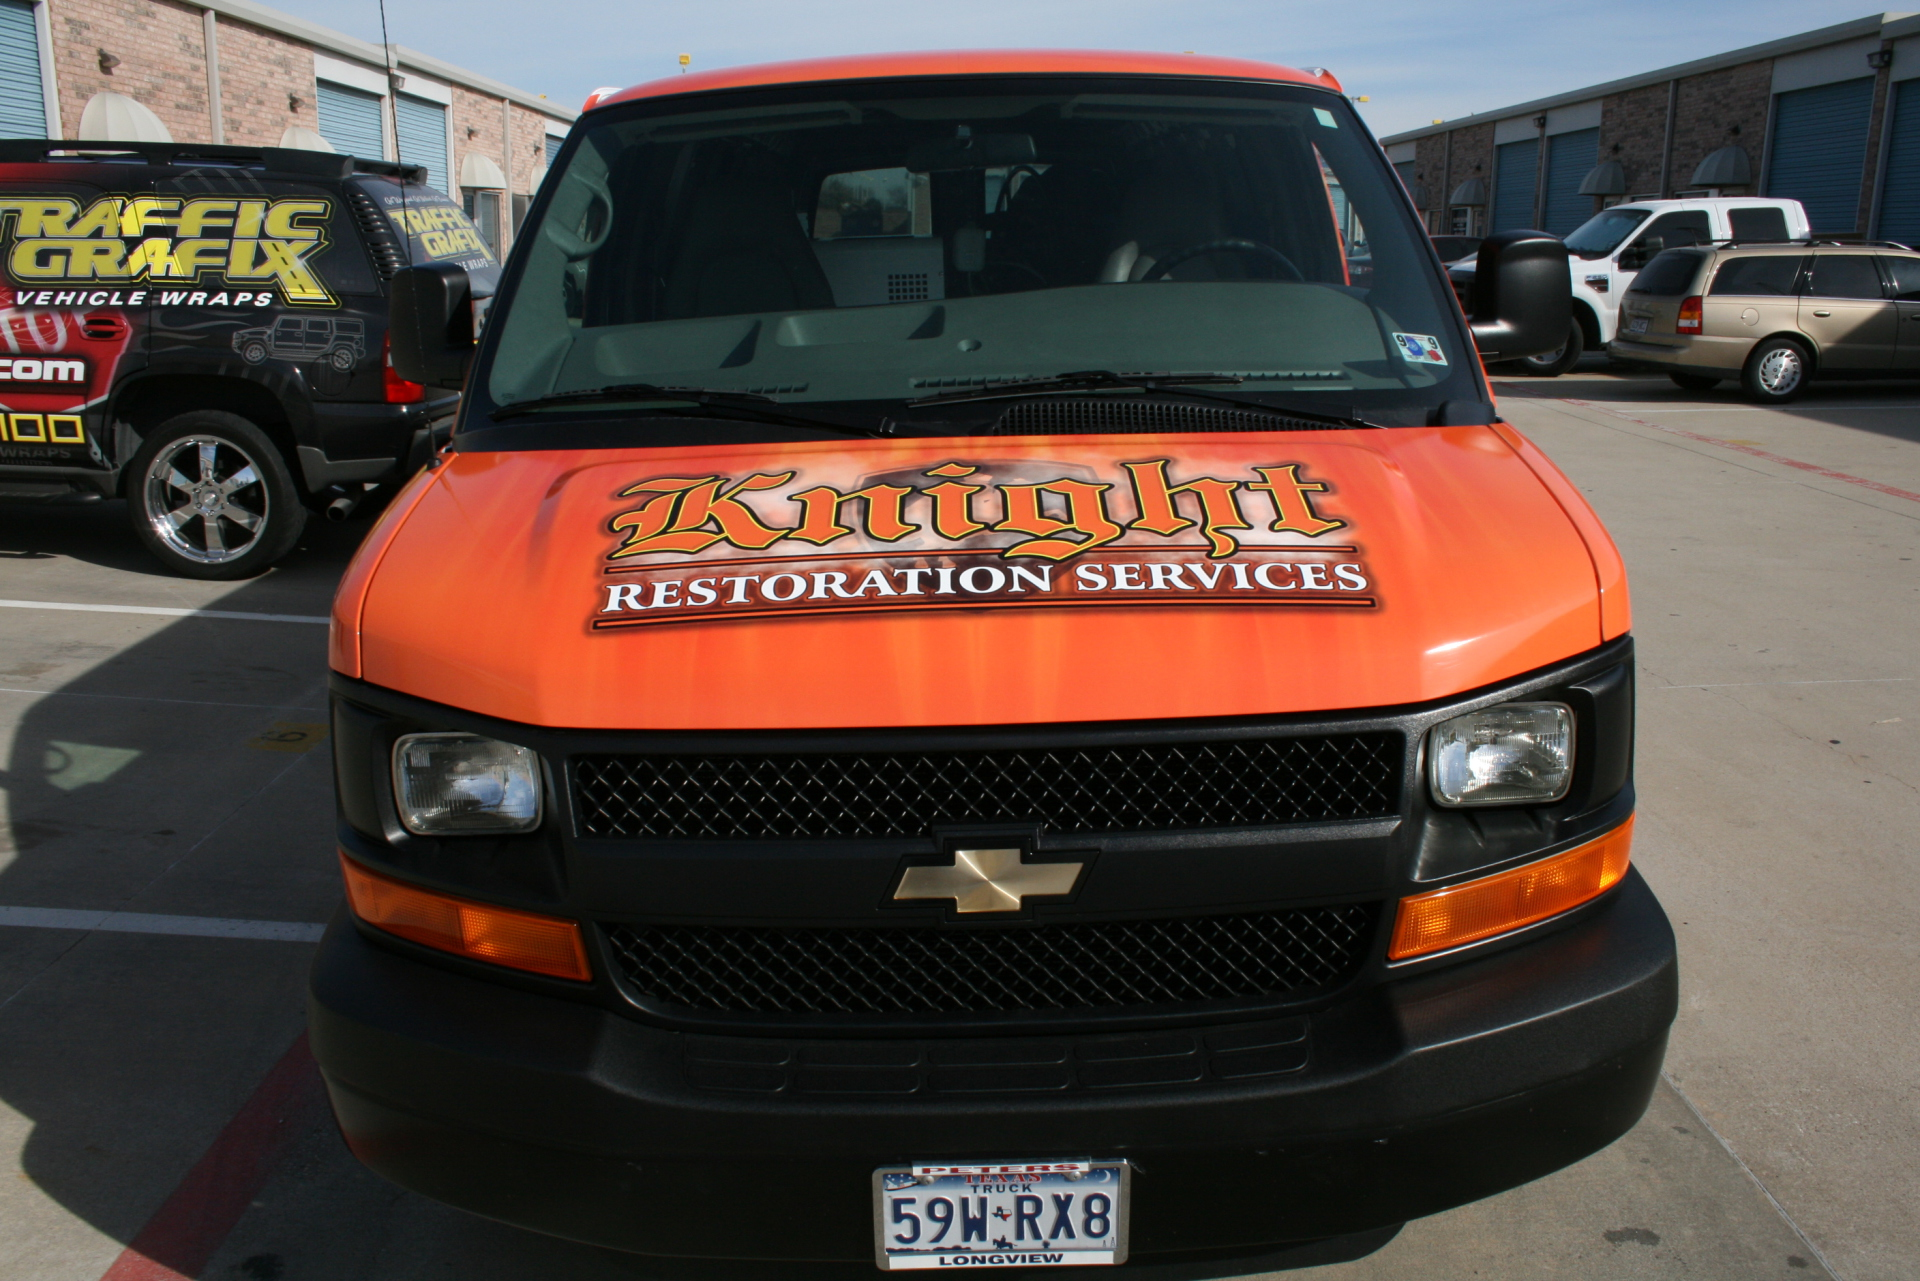 Hood cargo van wrap Dallas